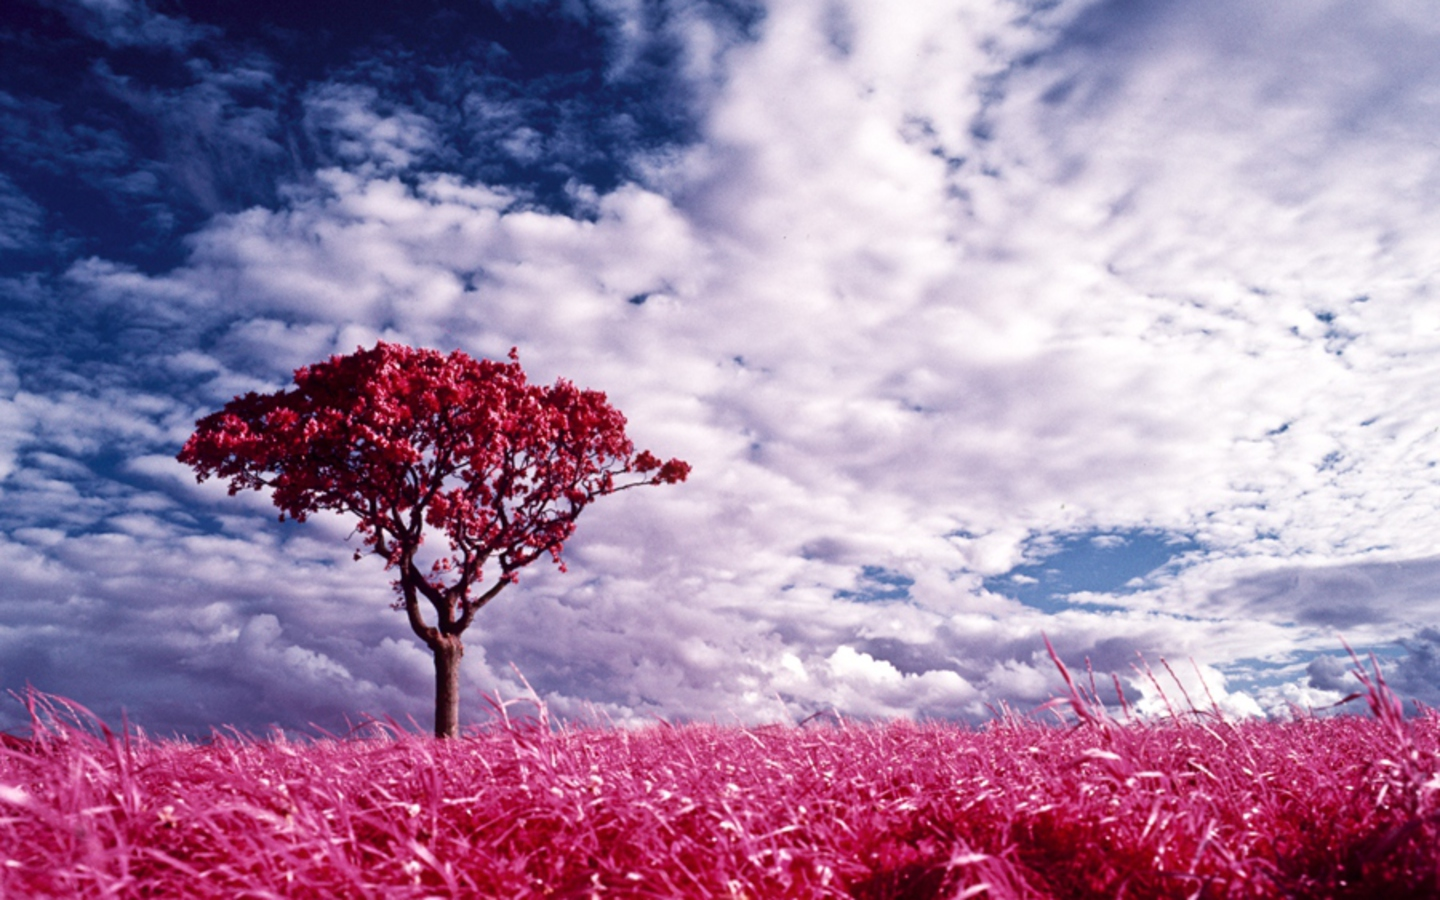 Nature Pink Land Desktop Wallpaper on this Pink Wallpaper Backgrounds 1440x900